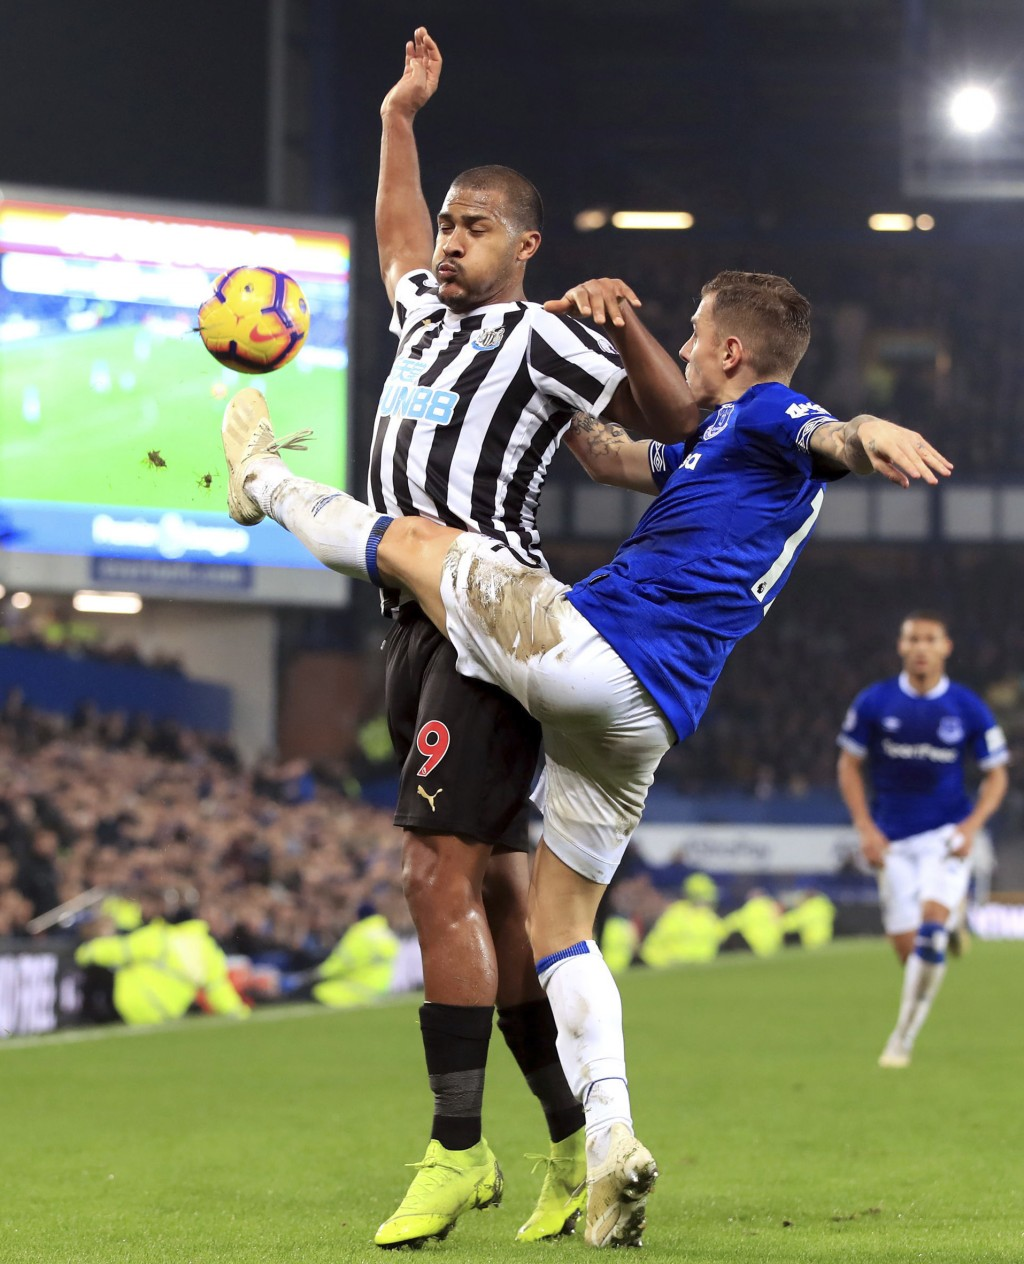 Newcastle United's Salomon Rondon, left, and Everton's Lucas Digne in action during their English Premier League soccer match at Goodison Park in Live